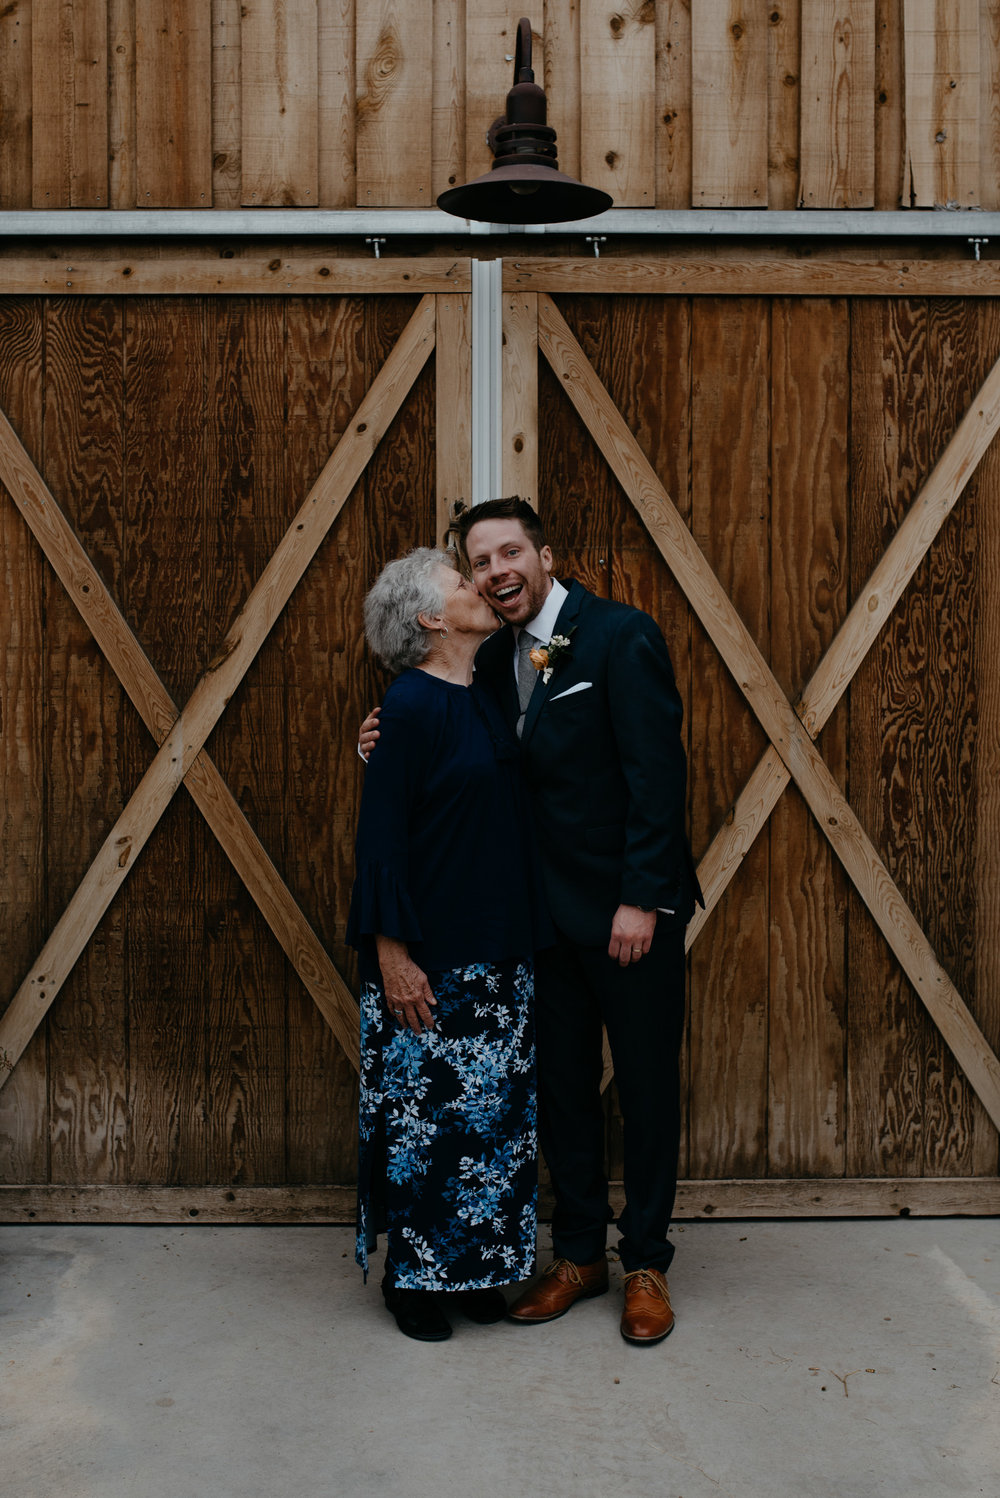 Family photos at Boulder, Colorado farm wedding.